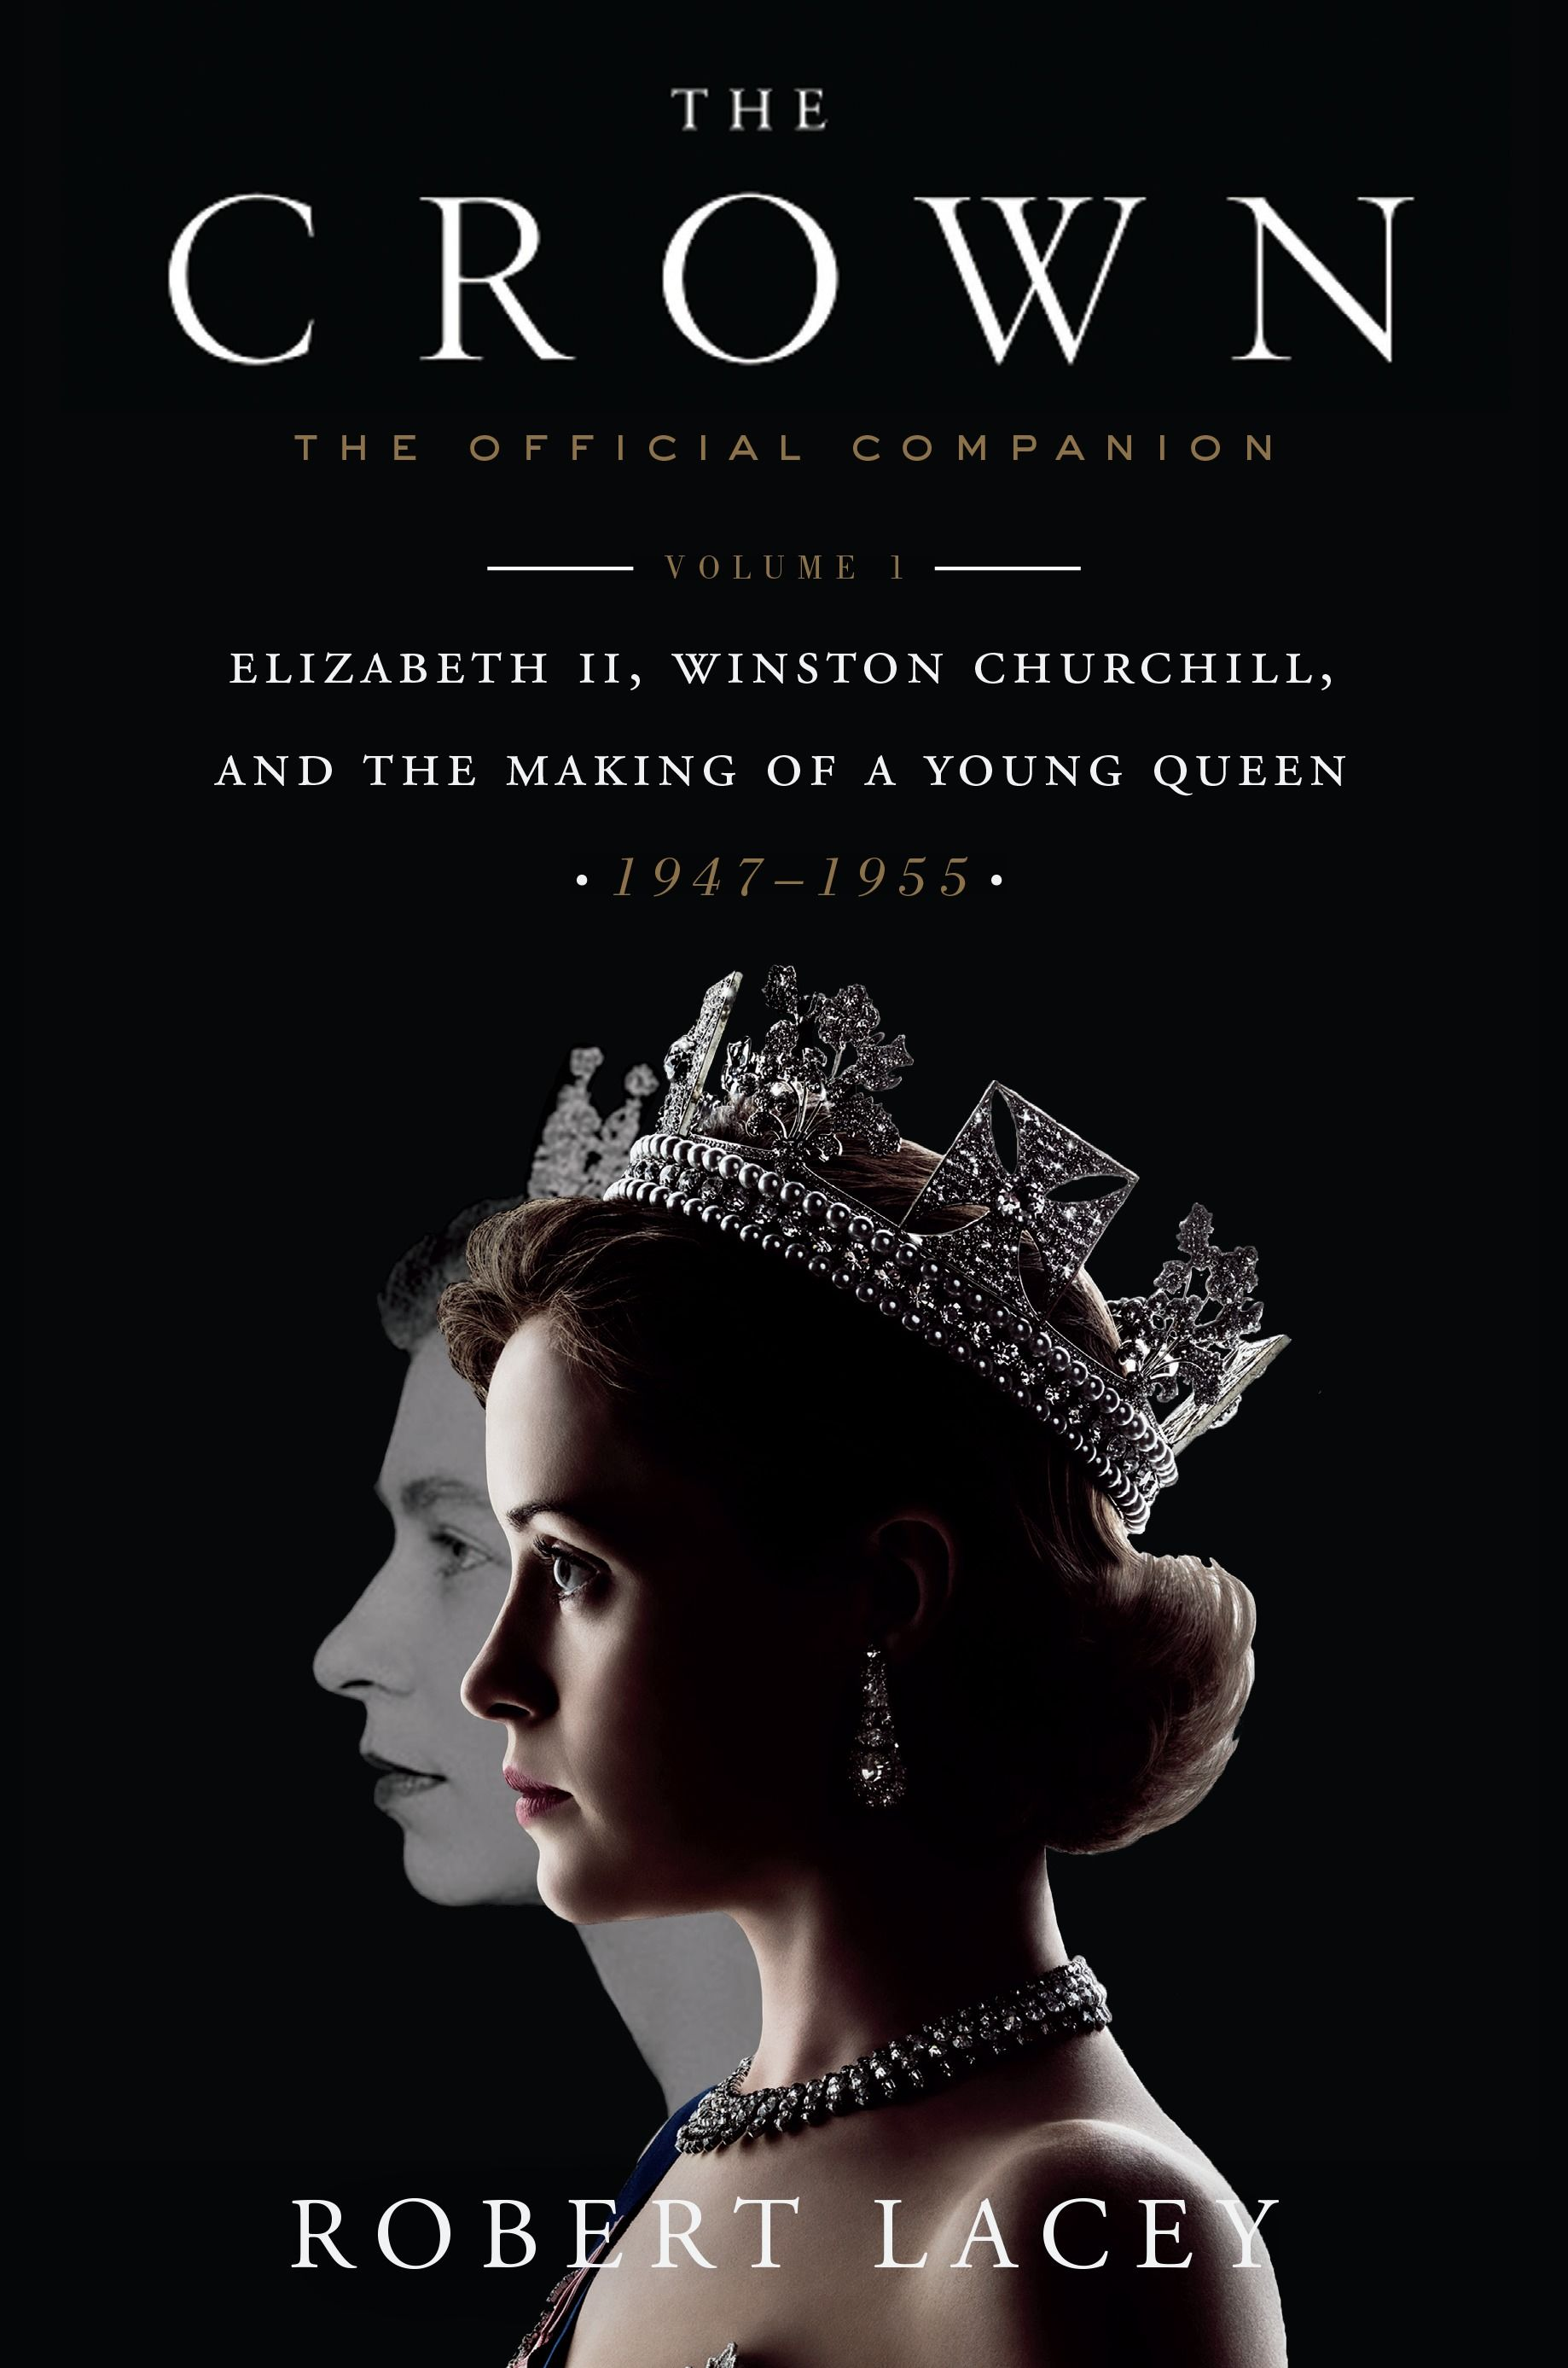 The Crown - Courtesy of Netflix